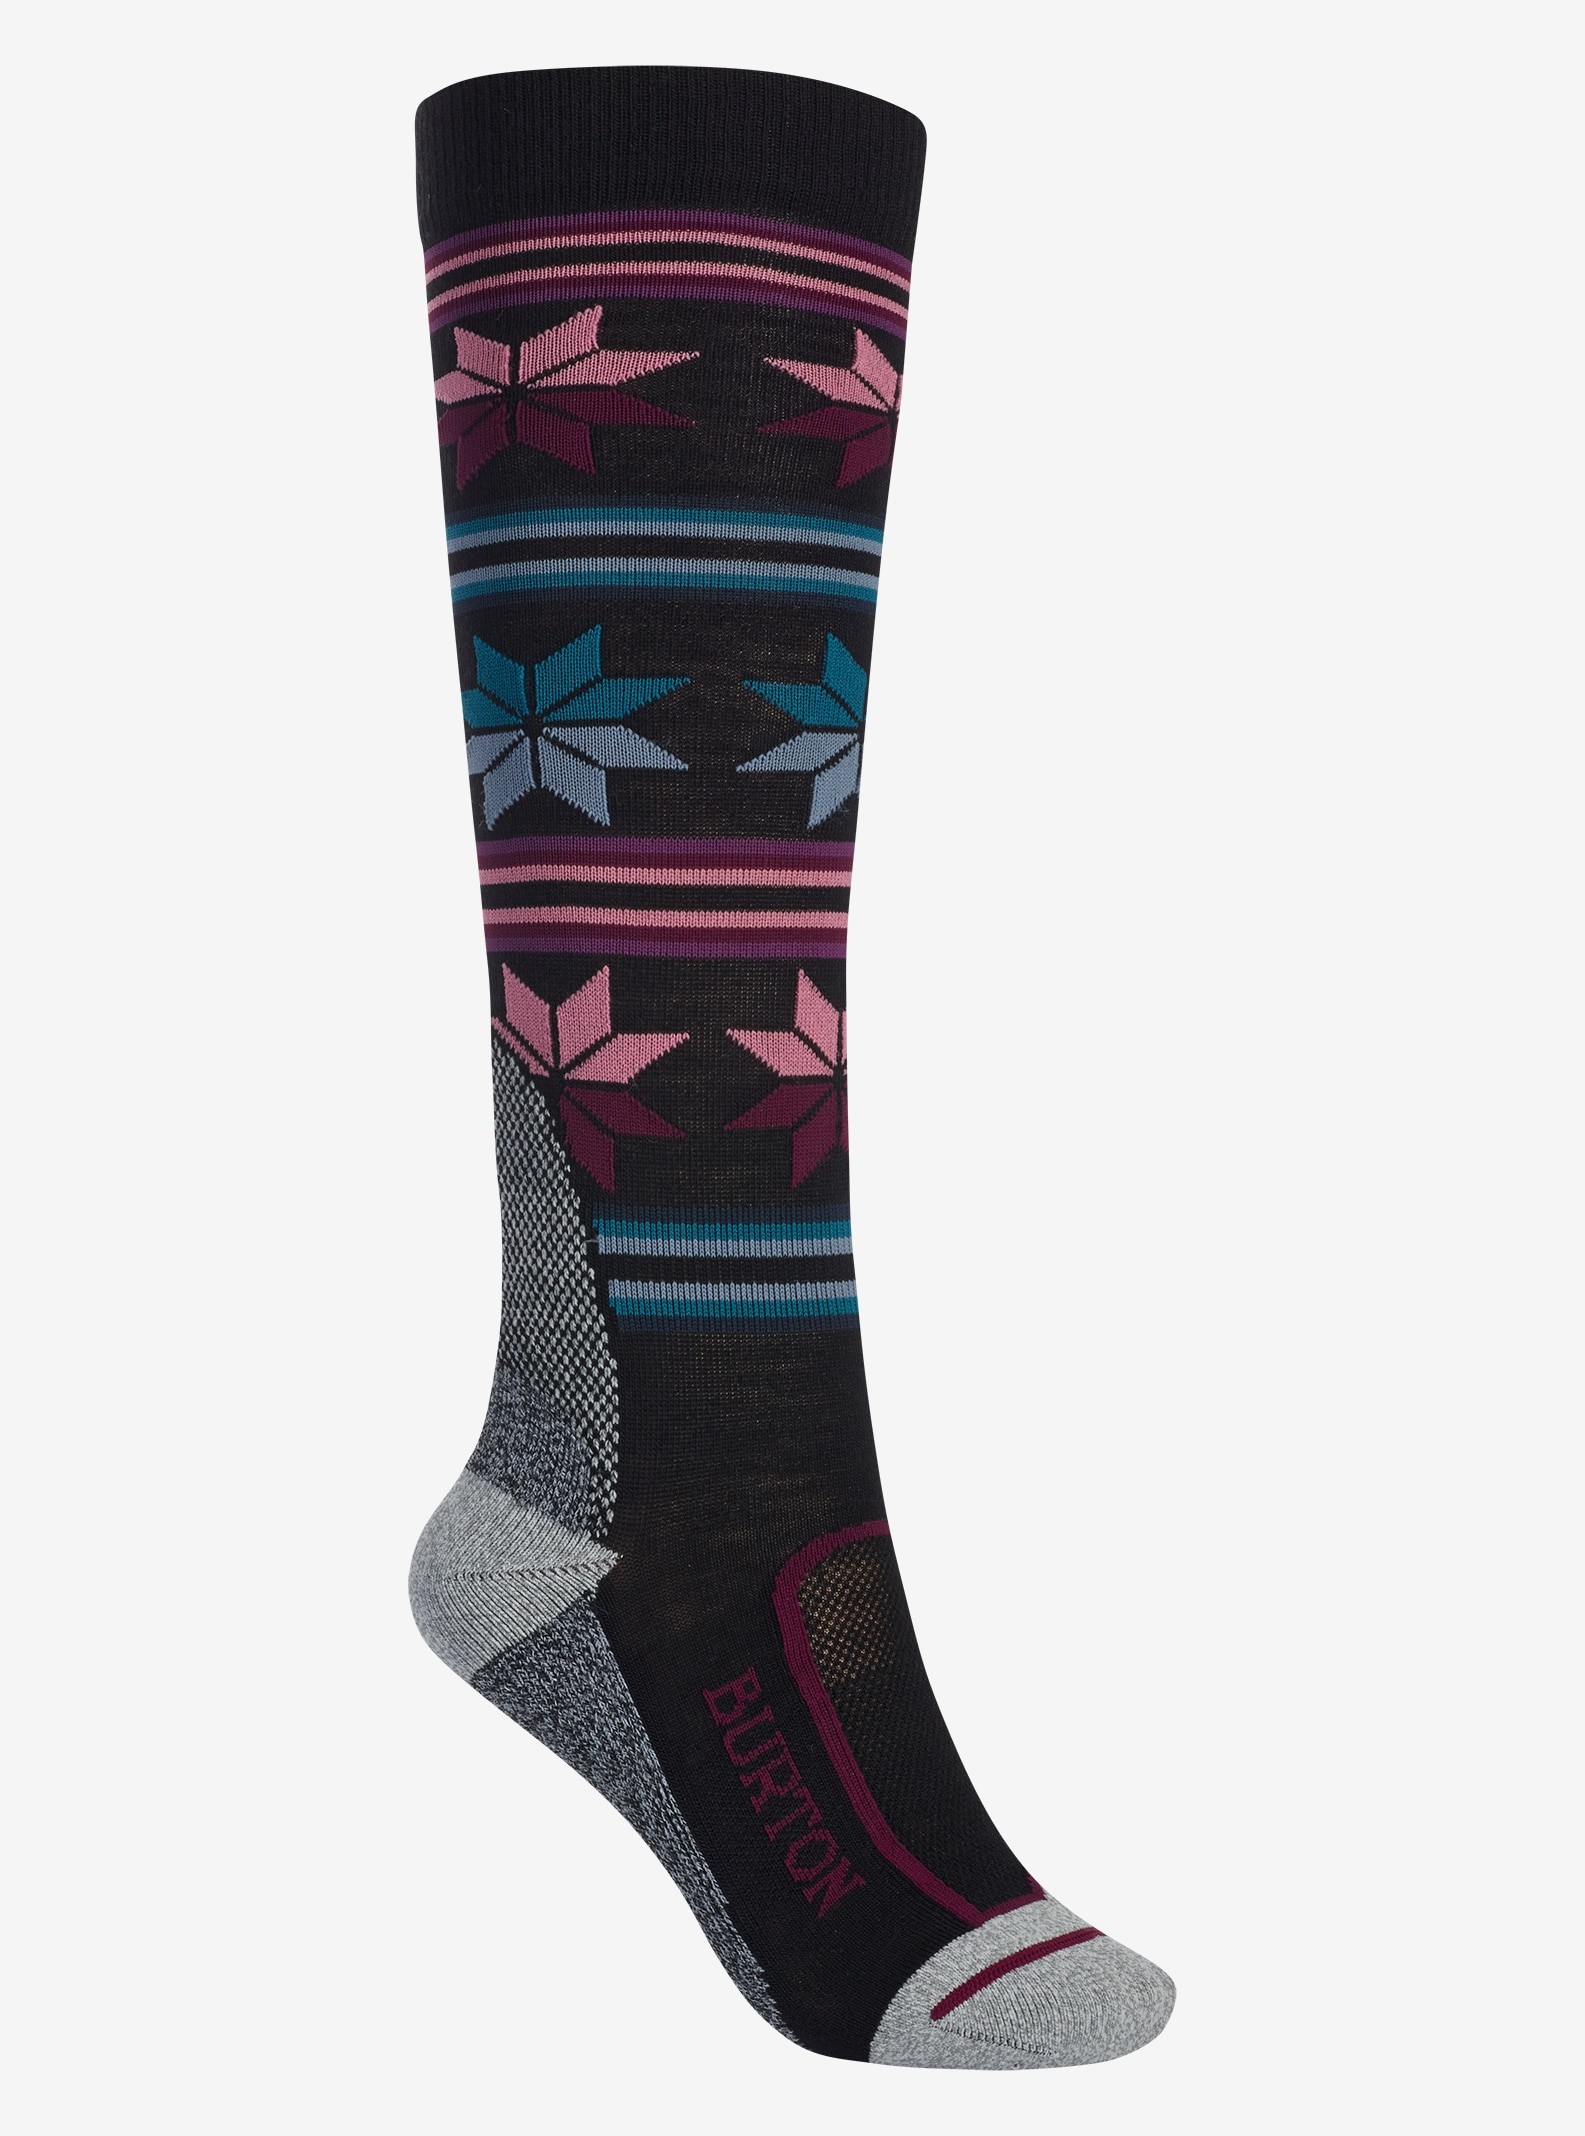 Burton Ultralight Wollsocken für Damen angezeigt in True Black